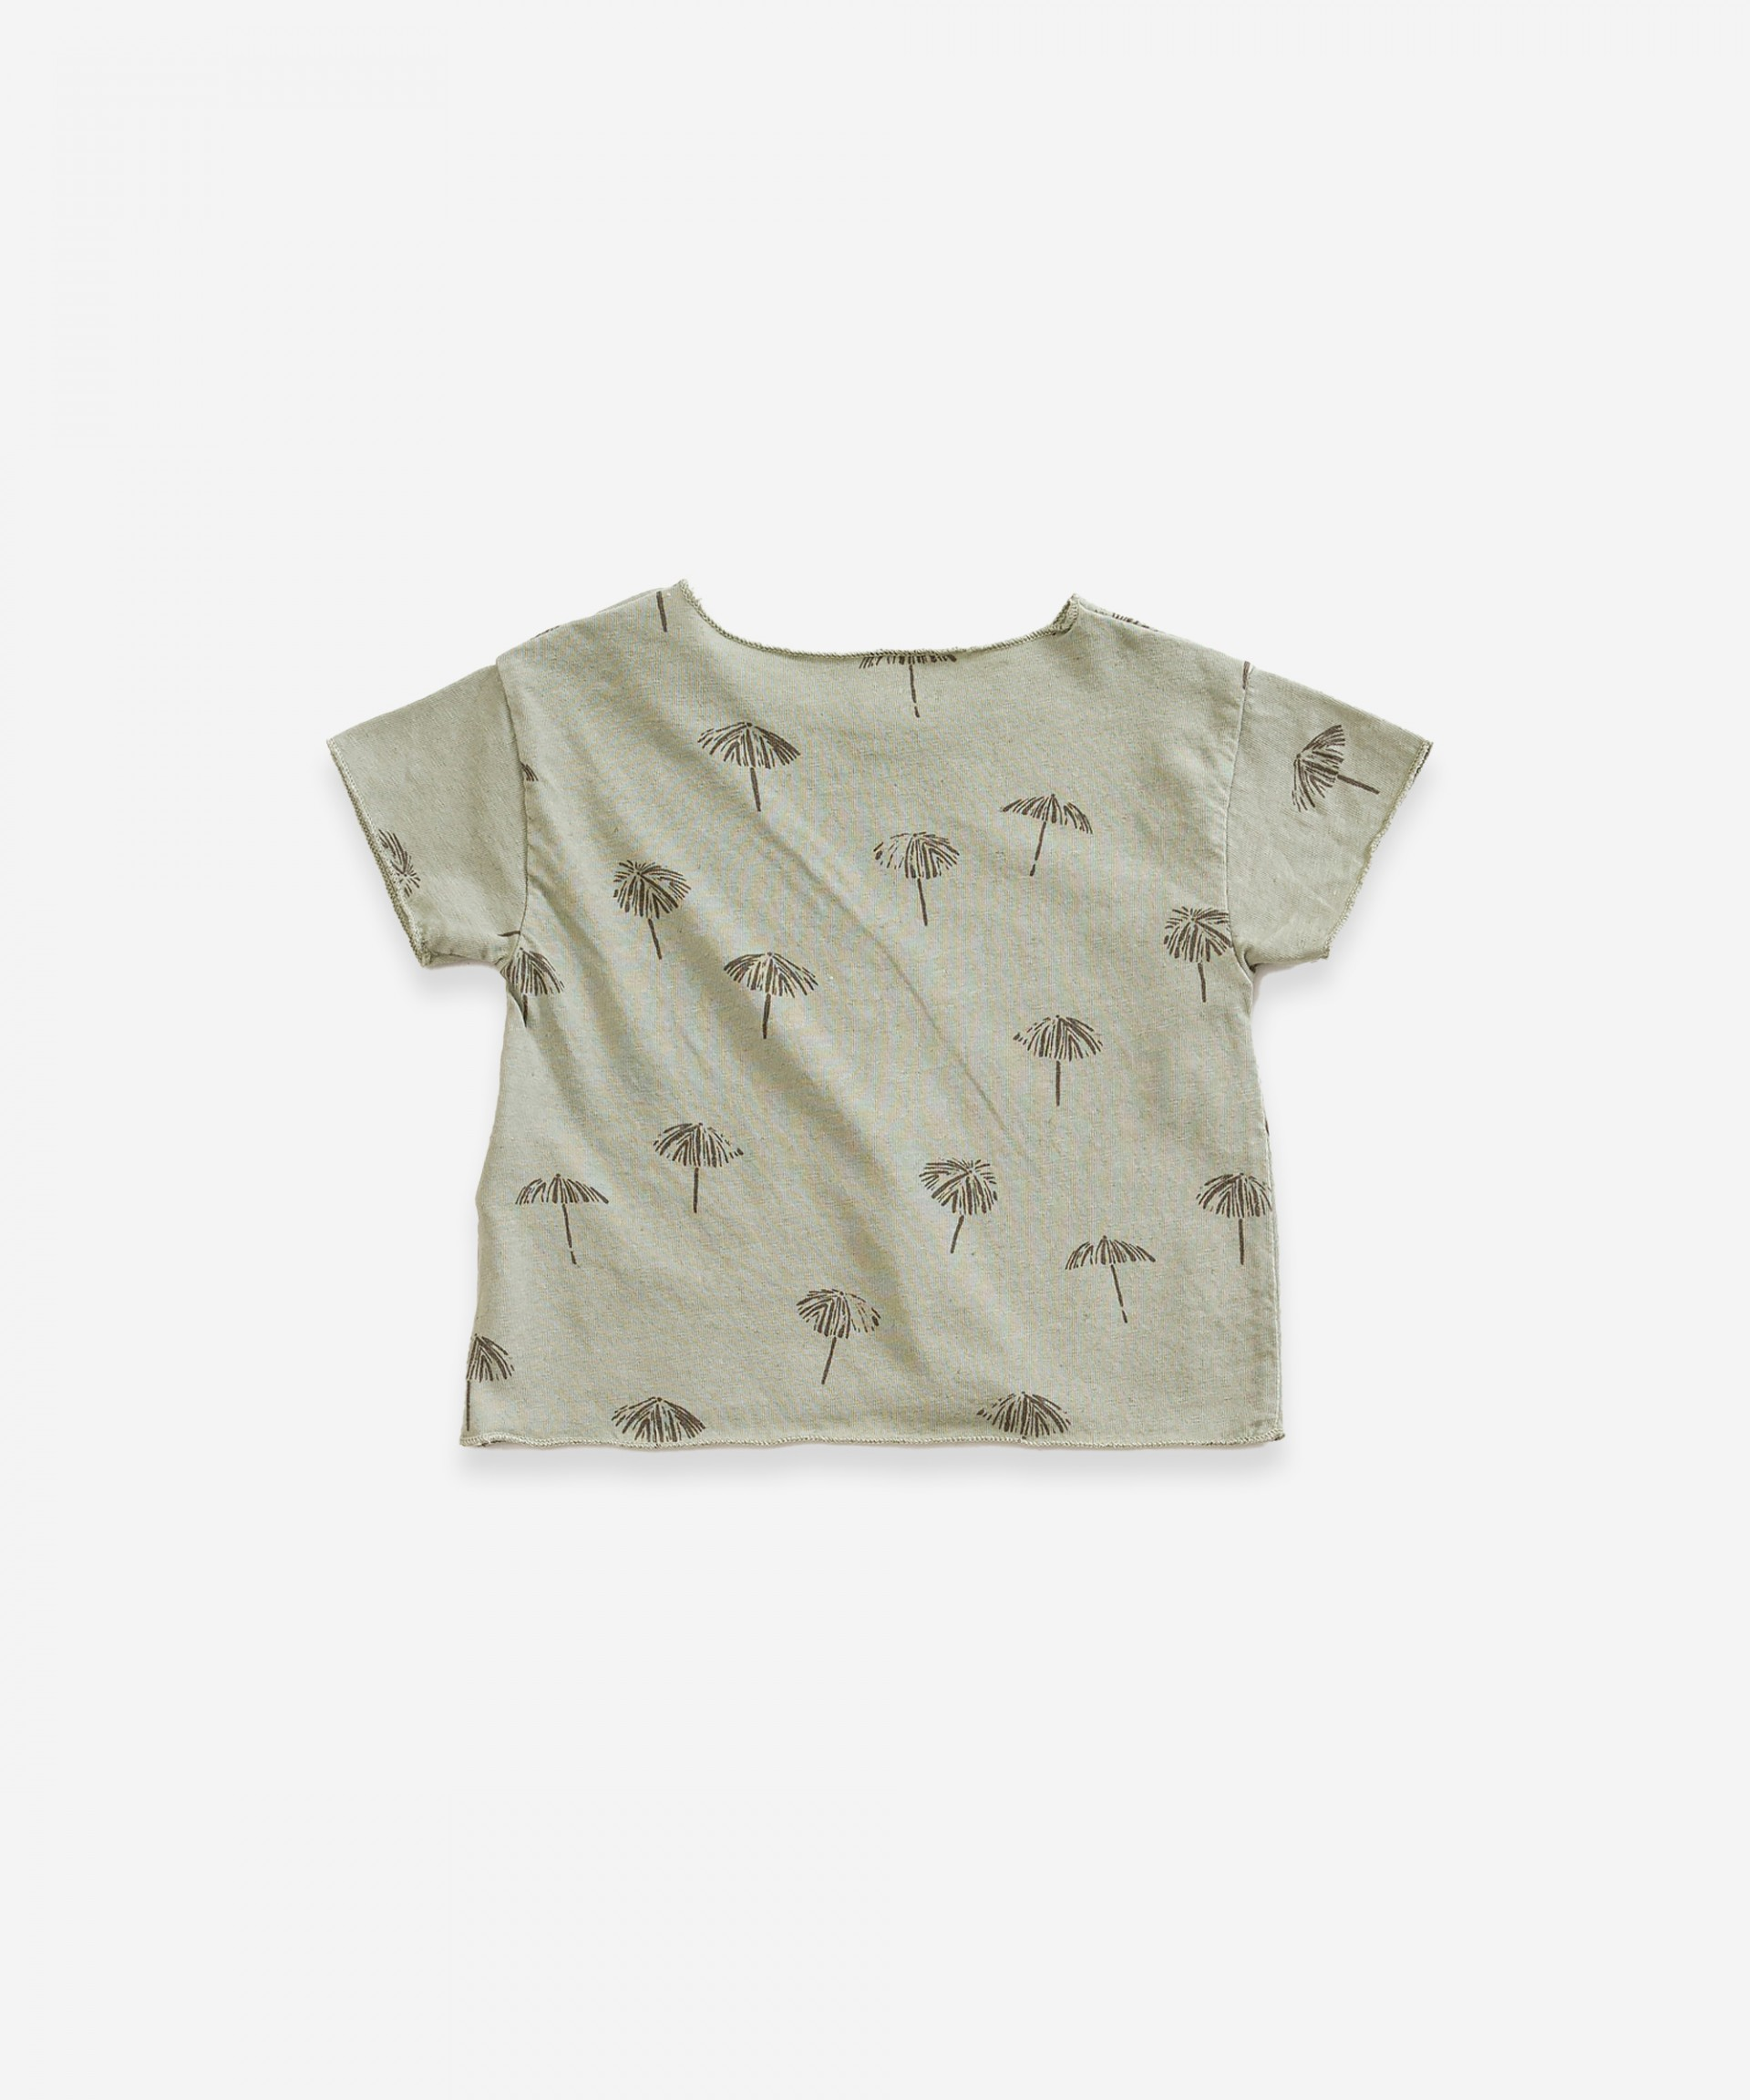 T-shirt in organic cotton and linen | Weaving